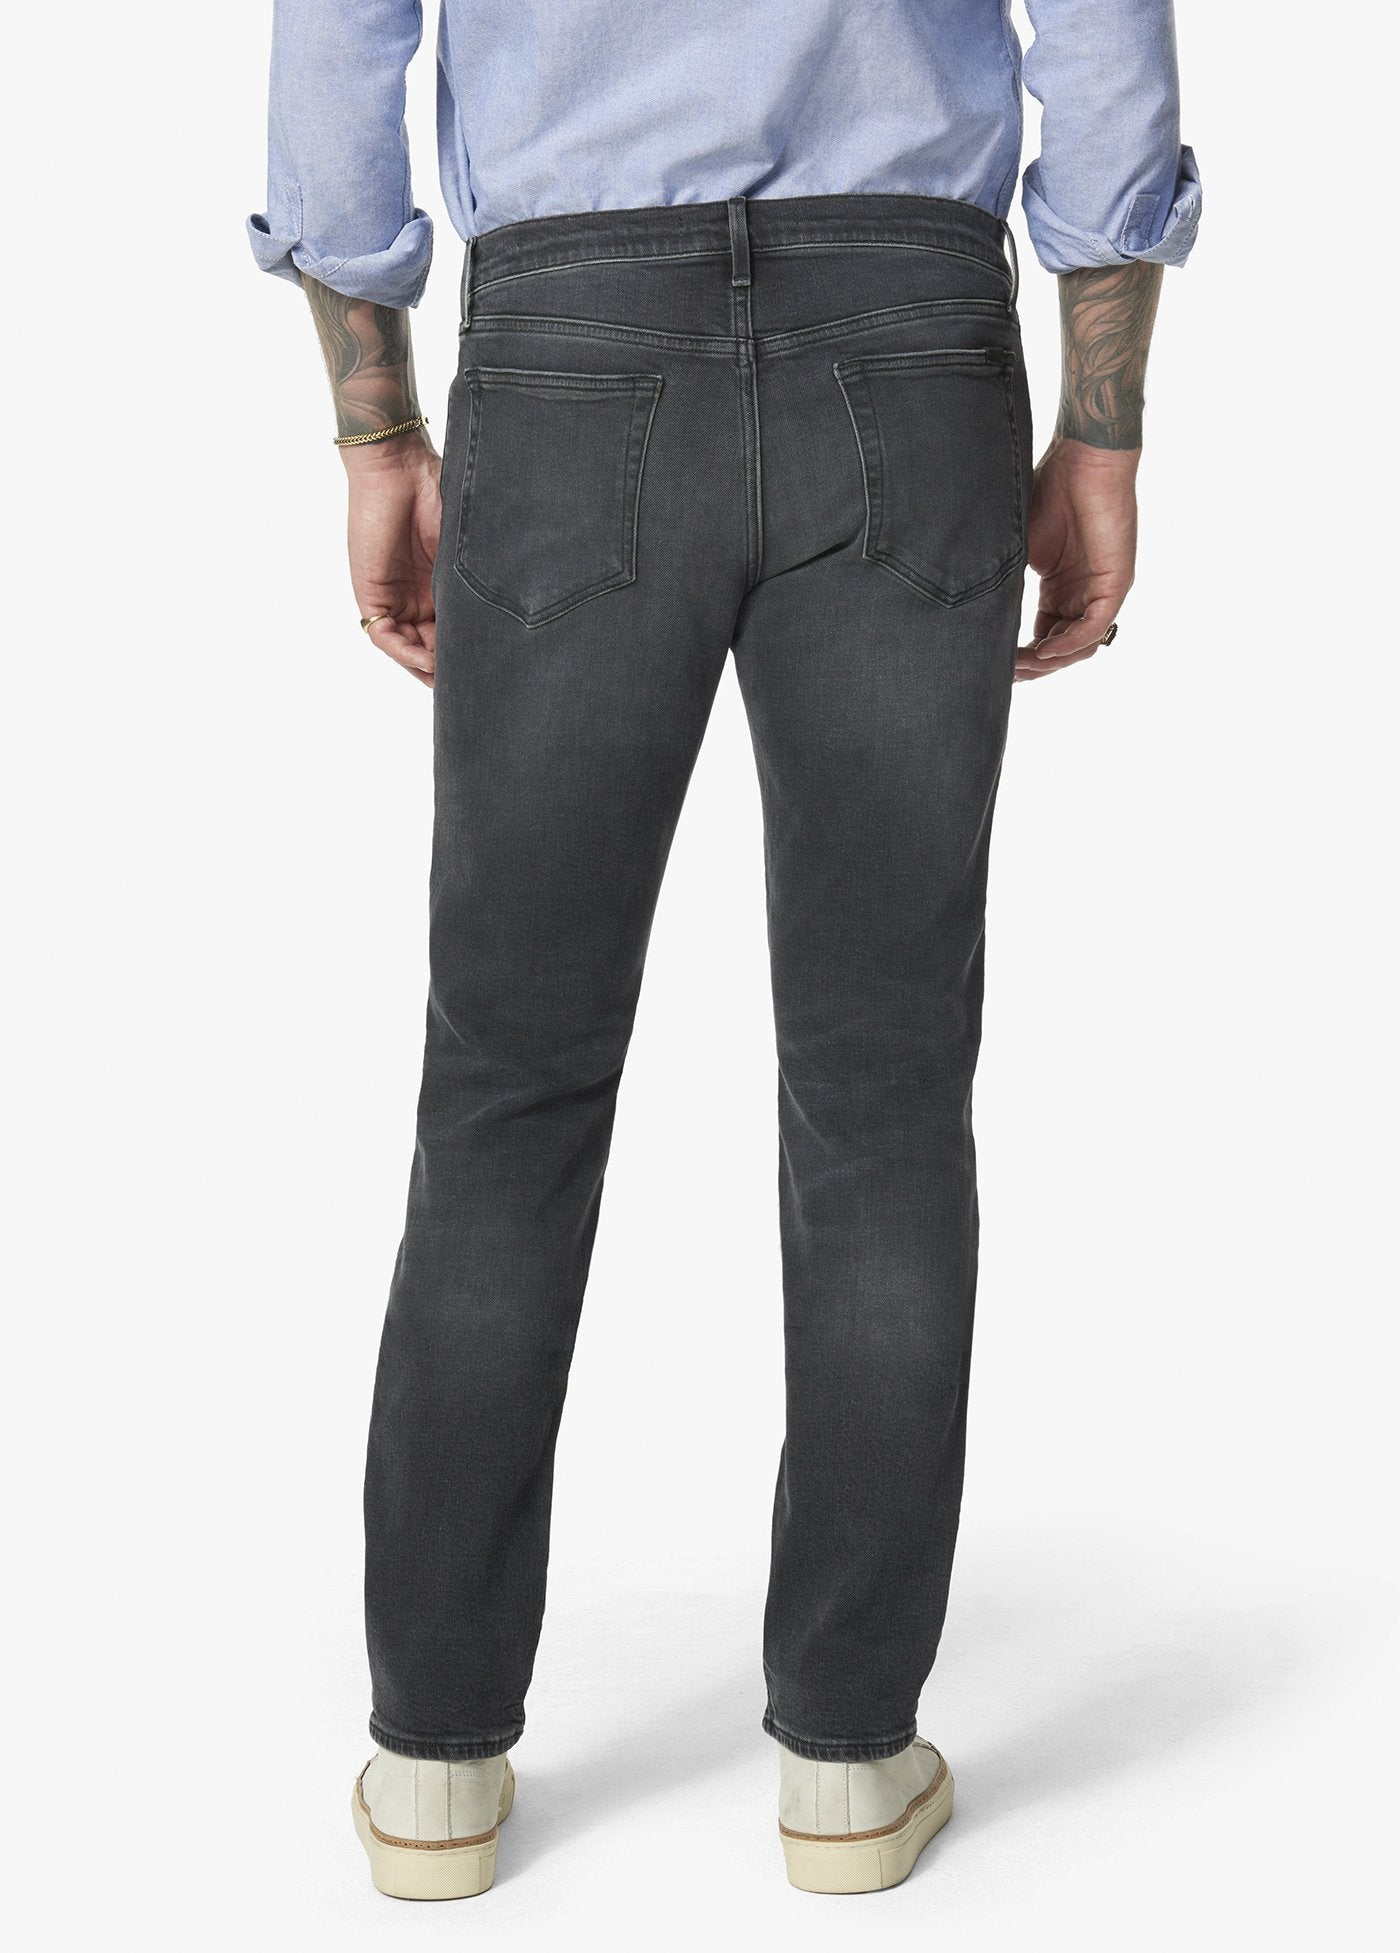 Joes Jeans The Asher Jean-ROEBLING 45CUBROE8215-RO